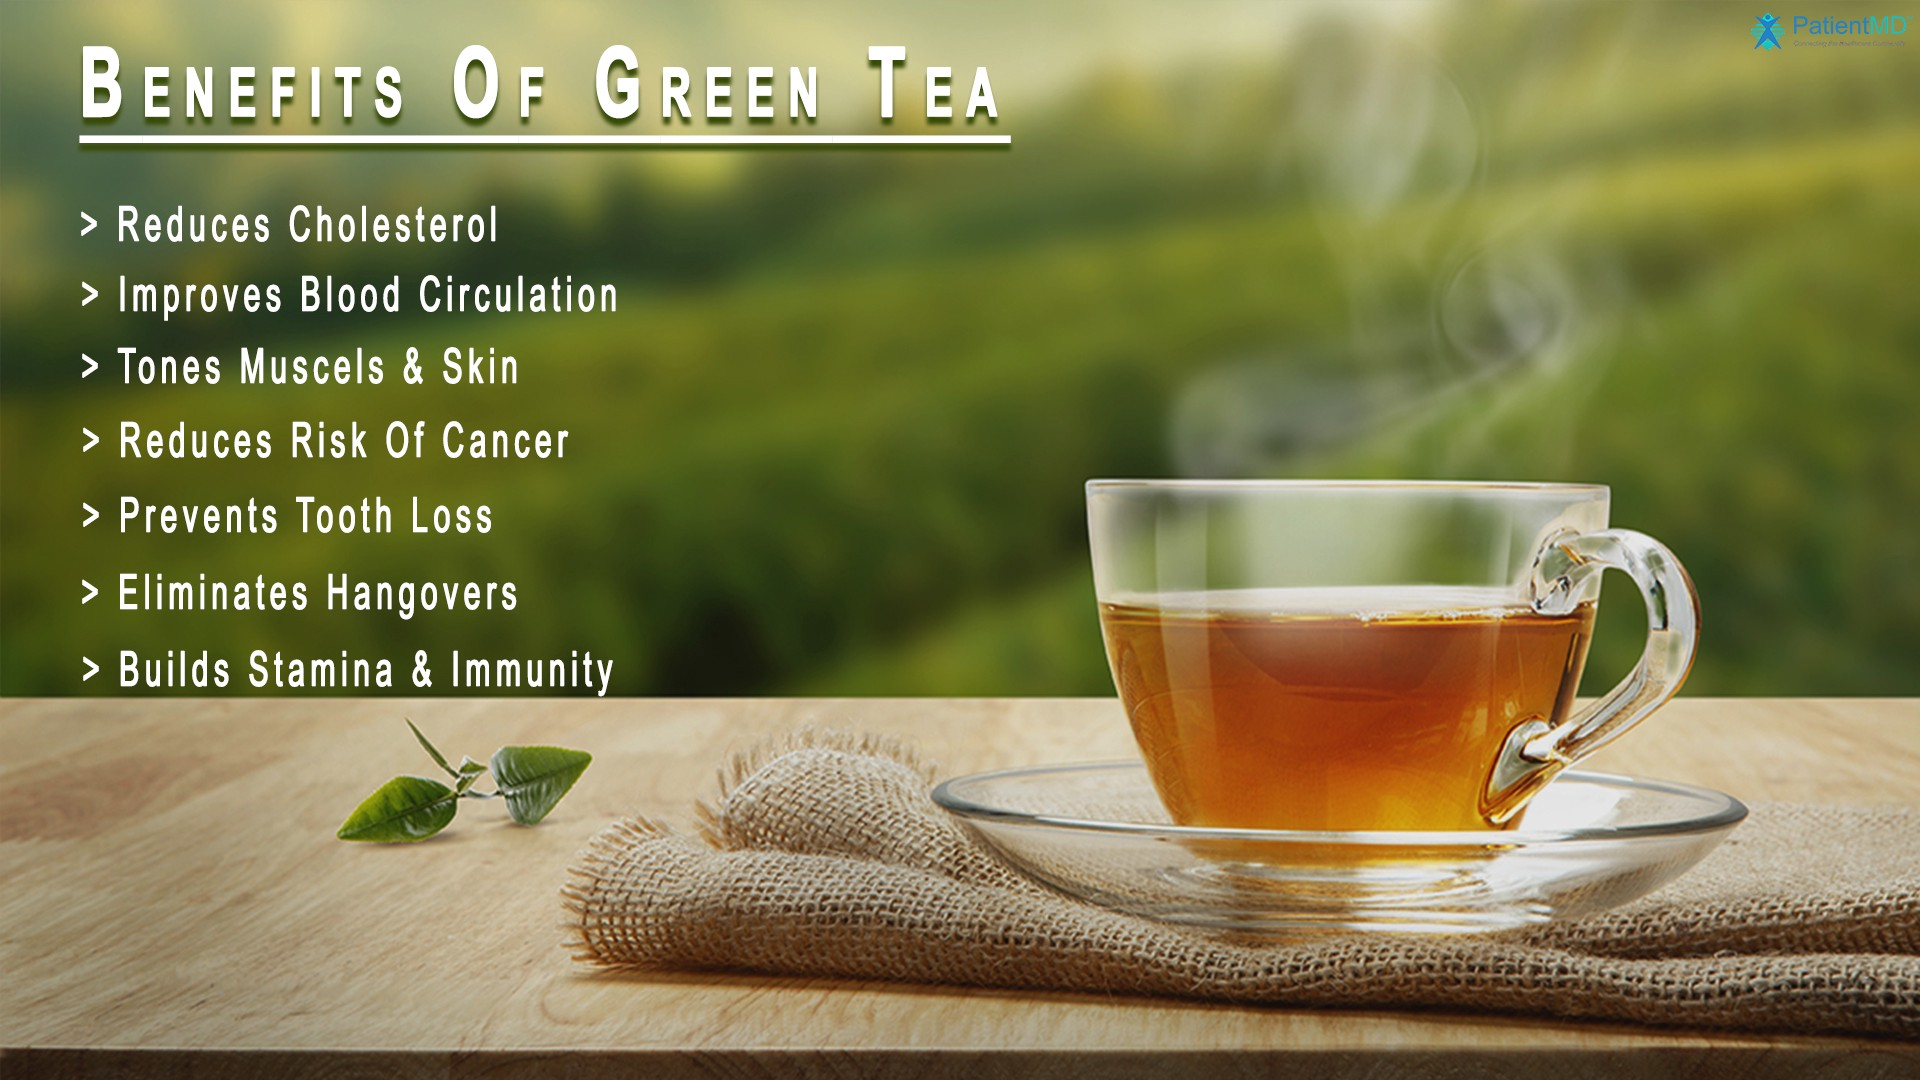 can green tea help reduce the risk of cancer? read on to know